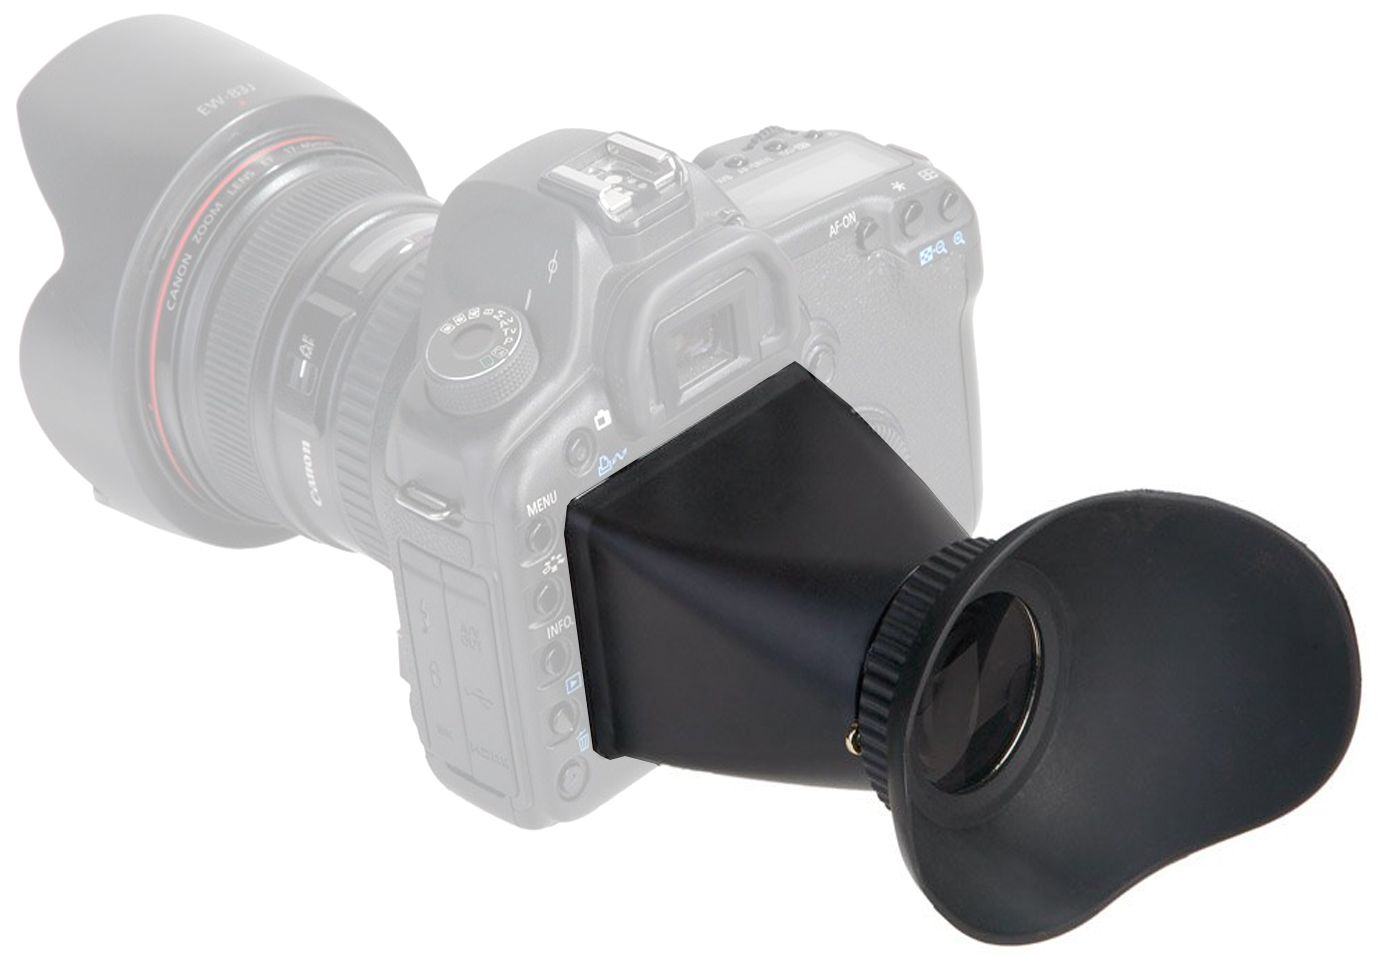 LCD VIEWFINDER  / V-Finder V1 / LCDVF  for  Canon 5D / 7D / 550D / Nikon D300 / D90